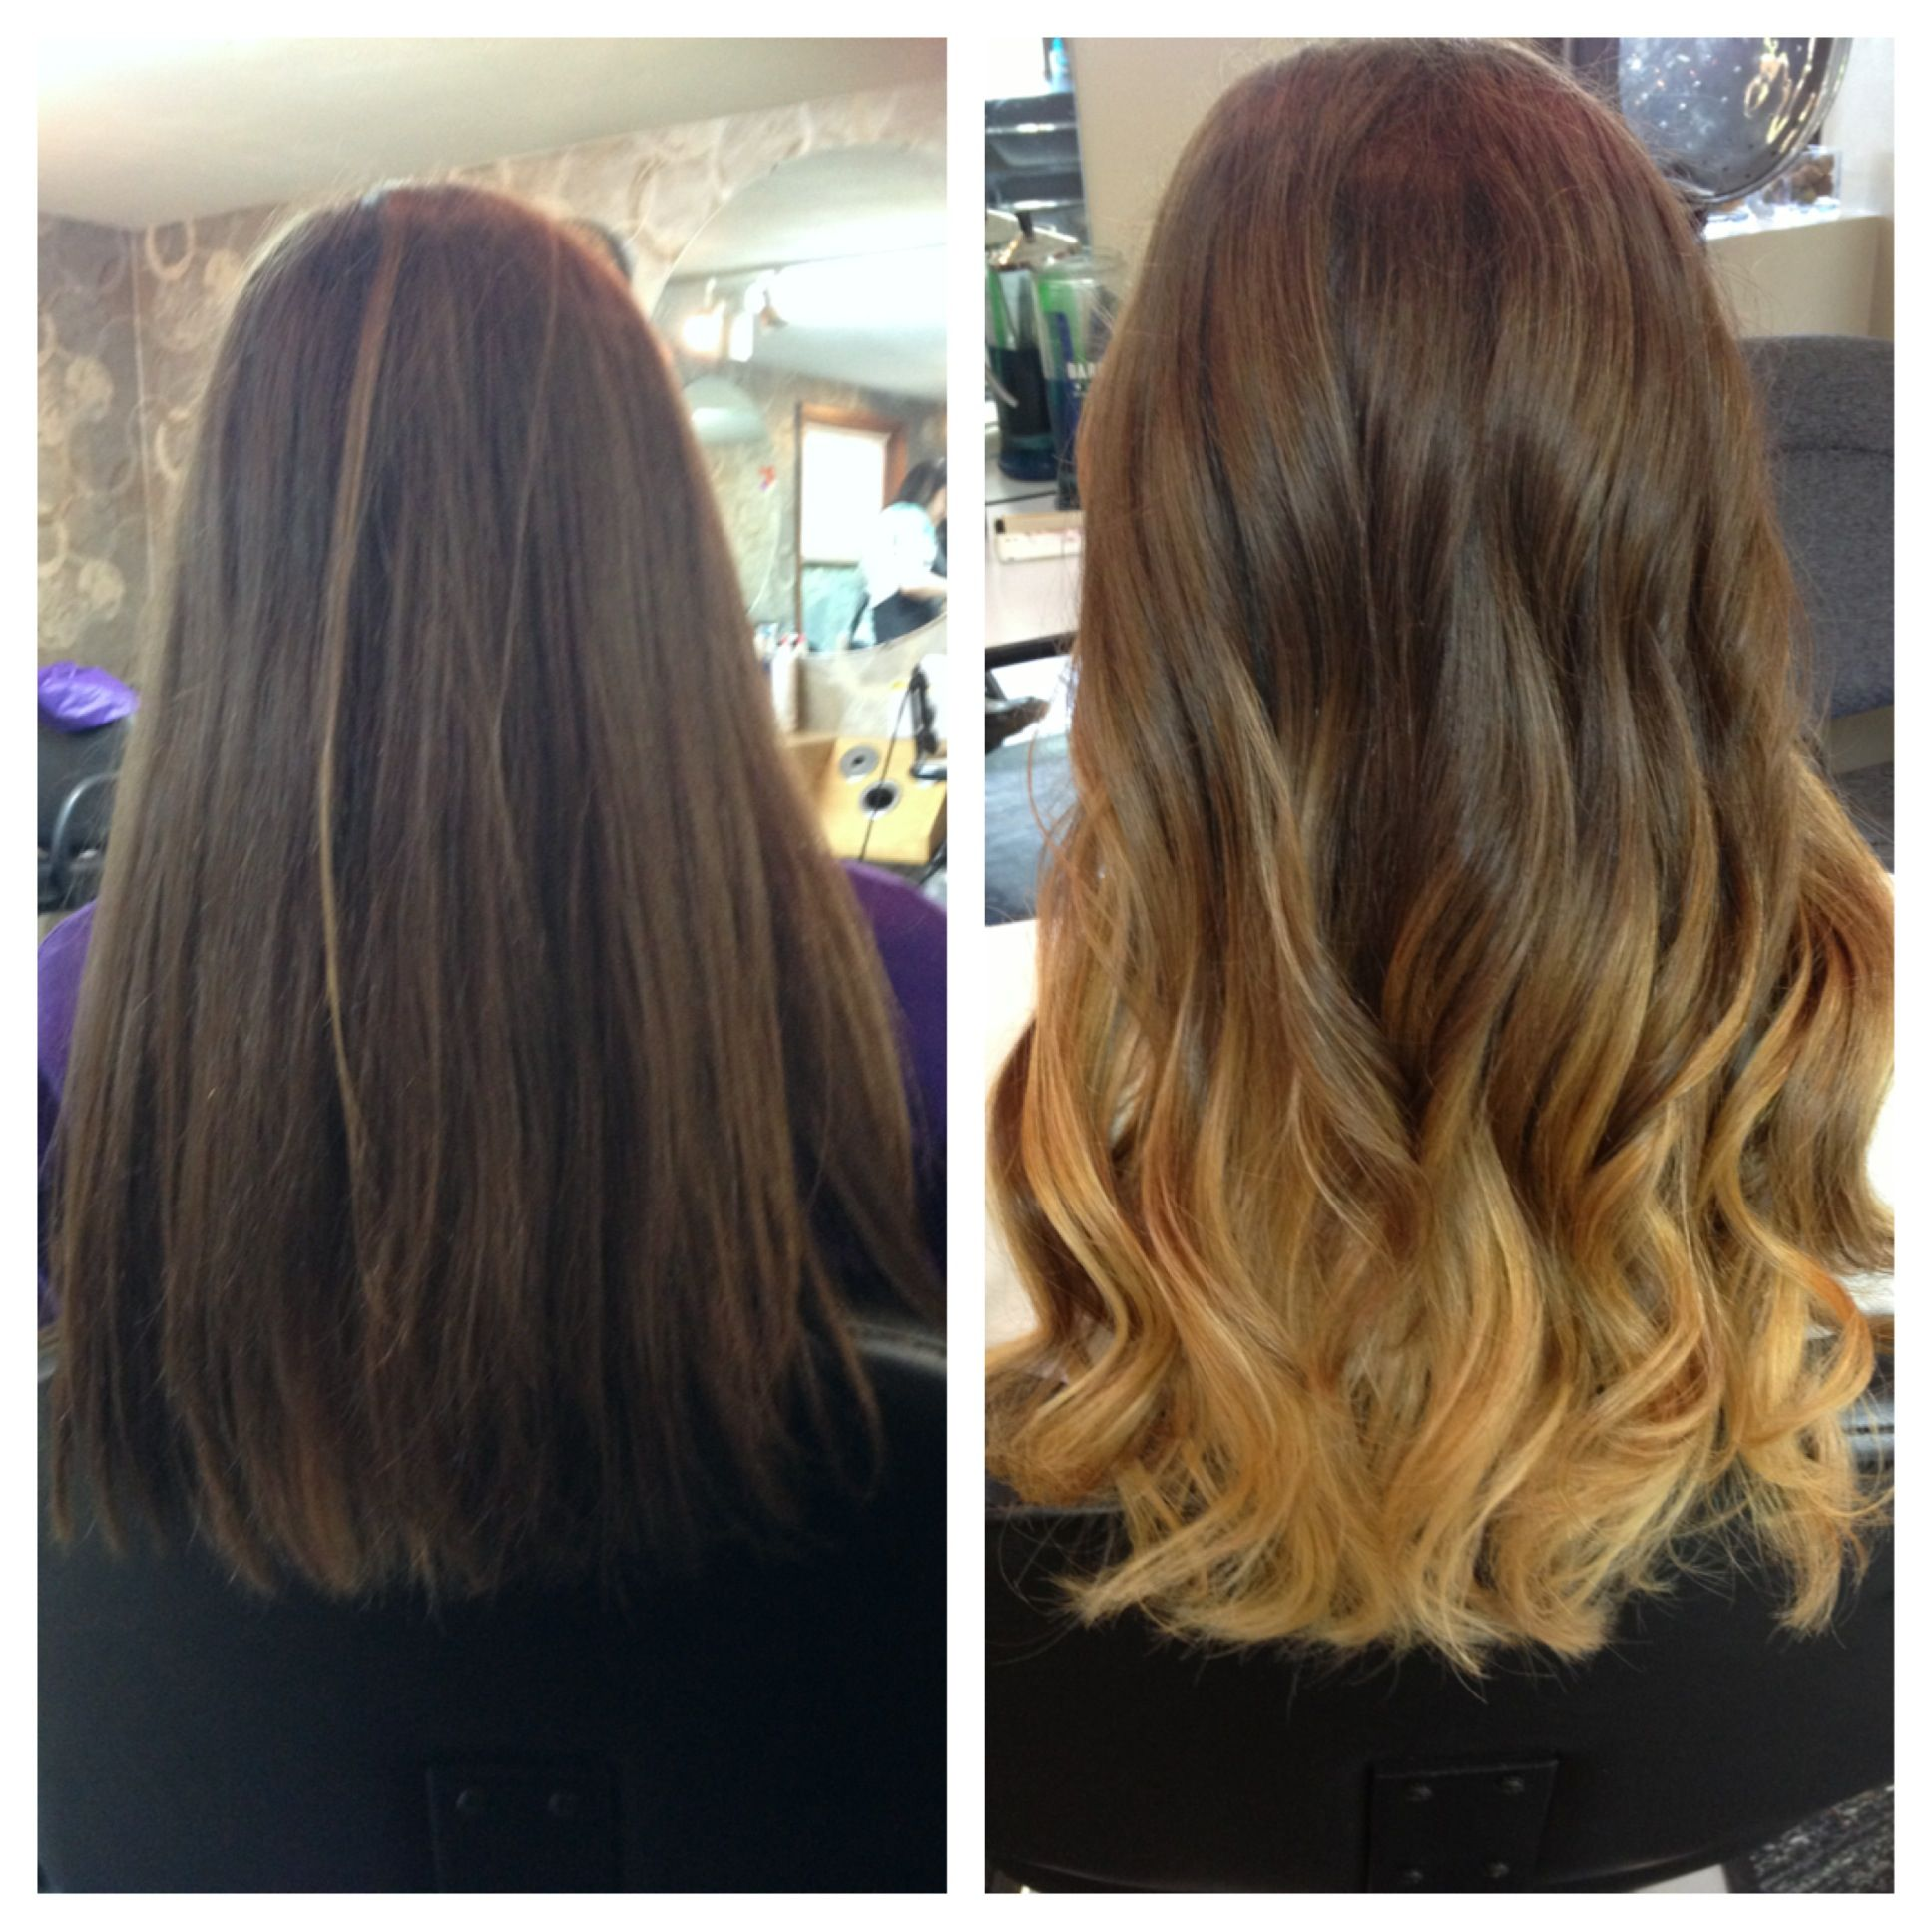 Ombre Hair Before And After Fashion Hair Ombre Hair Hair Styles